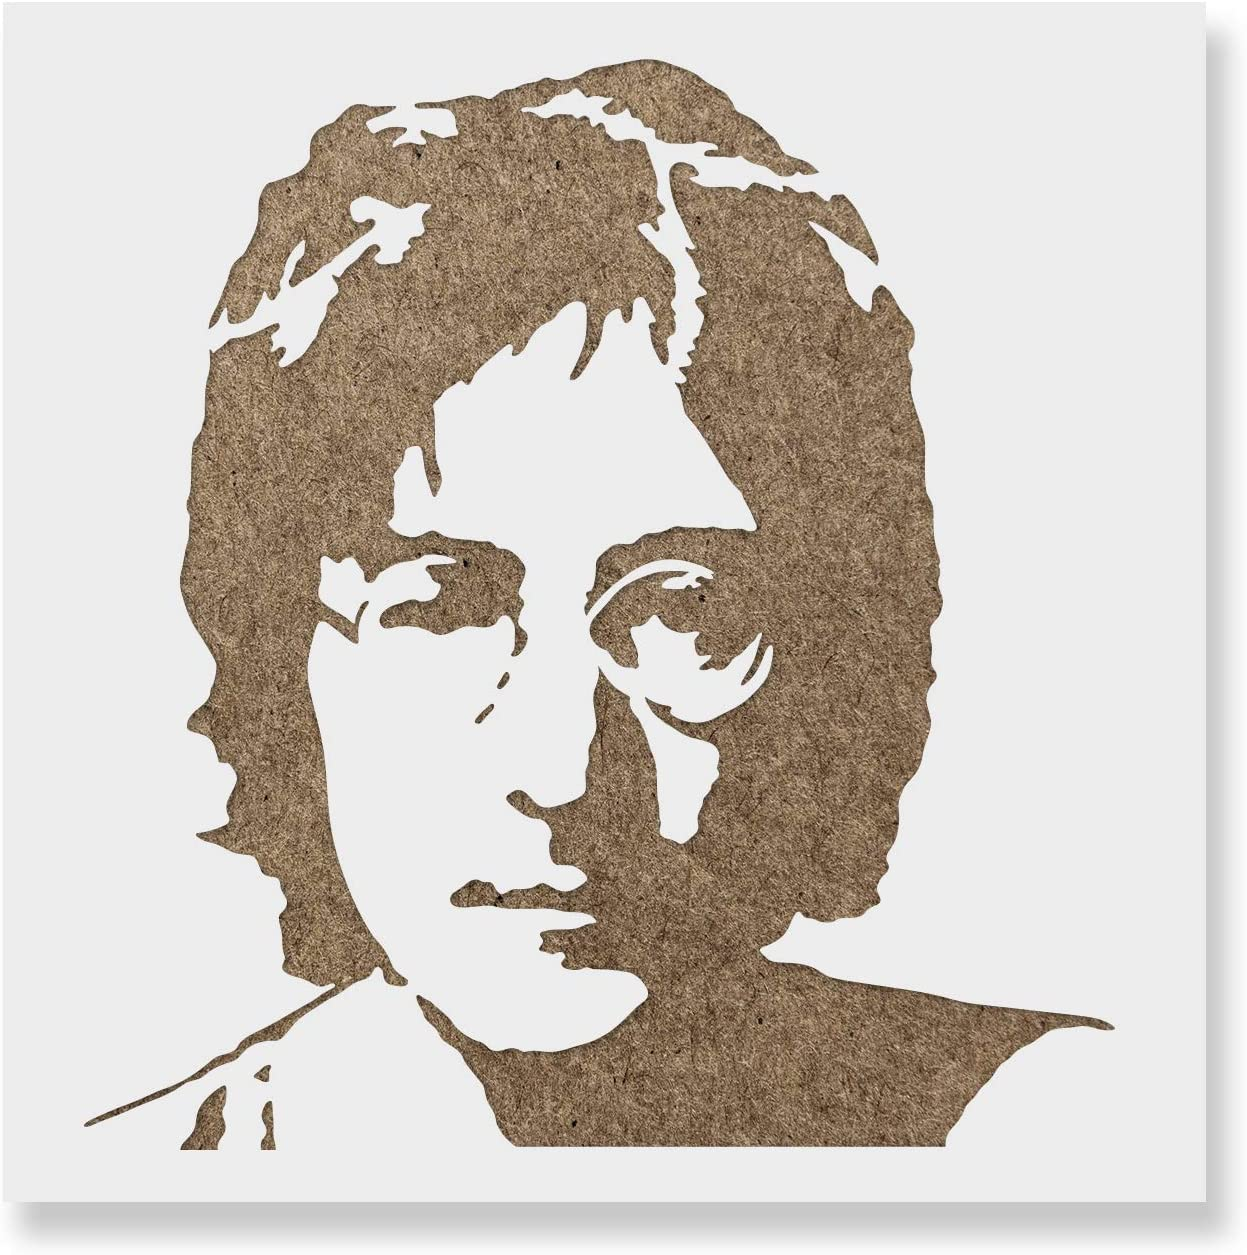 John Lennon Stencil - Reusable Stencils for Painting - Mylar Stencil for Crafts and Decor